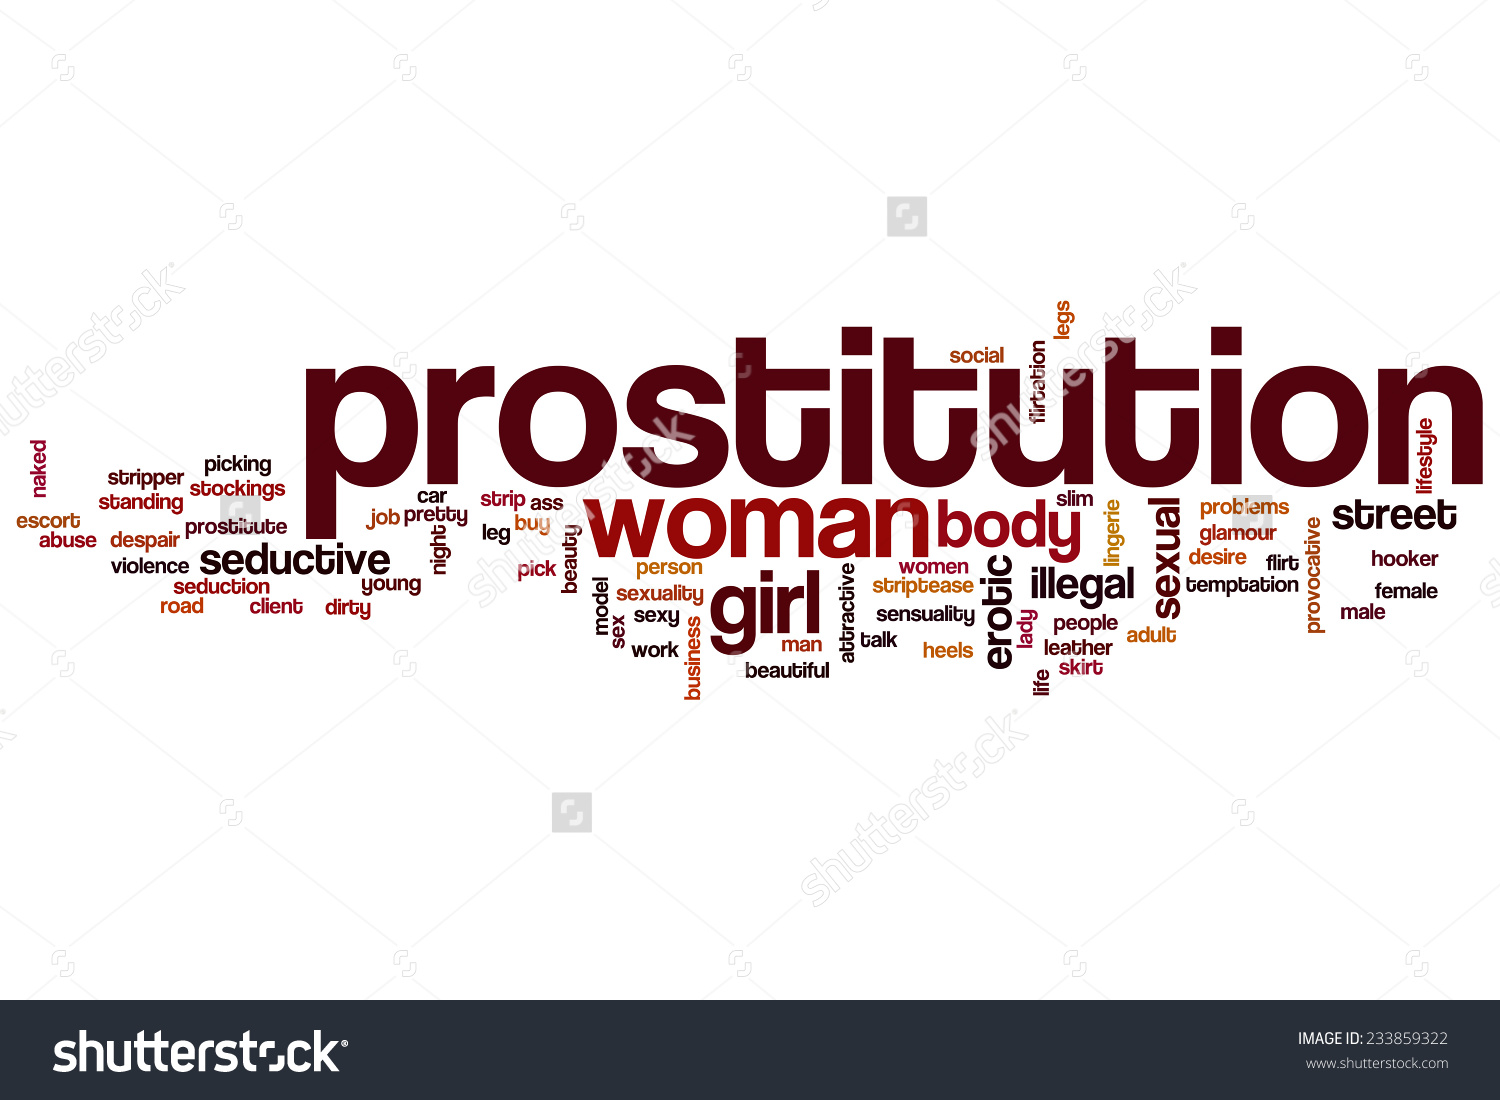 Prostitution Word Cloud Concept Stock Illustration 233859322.